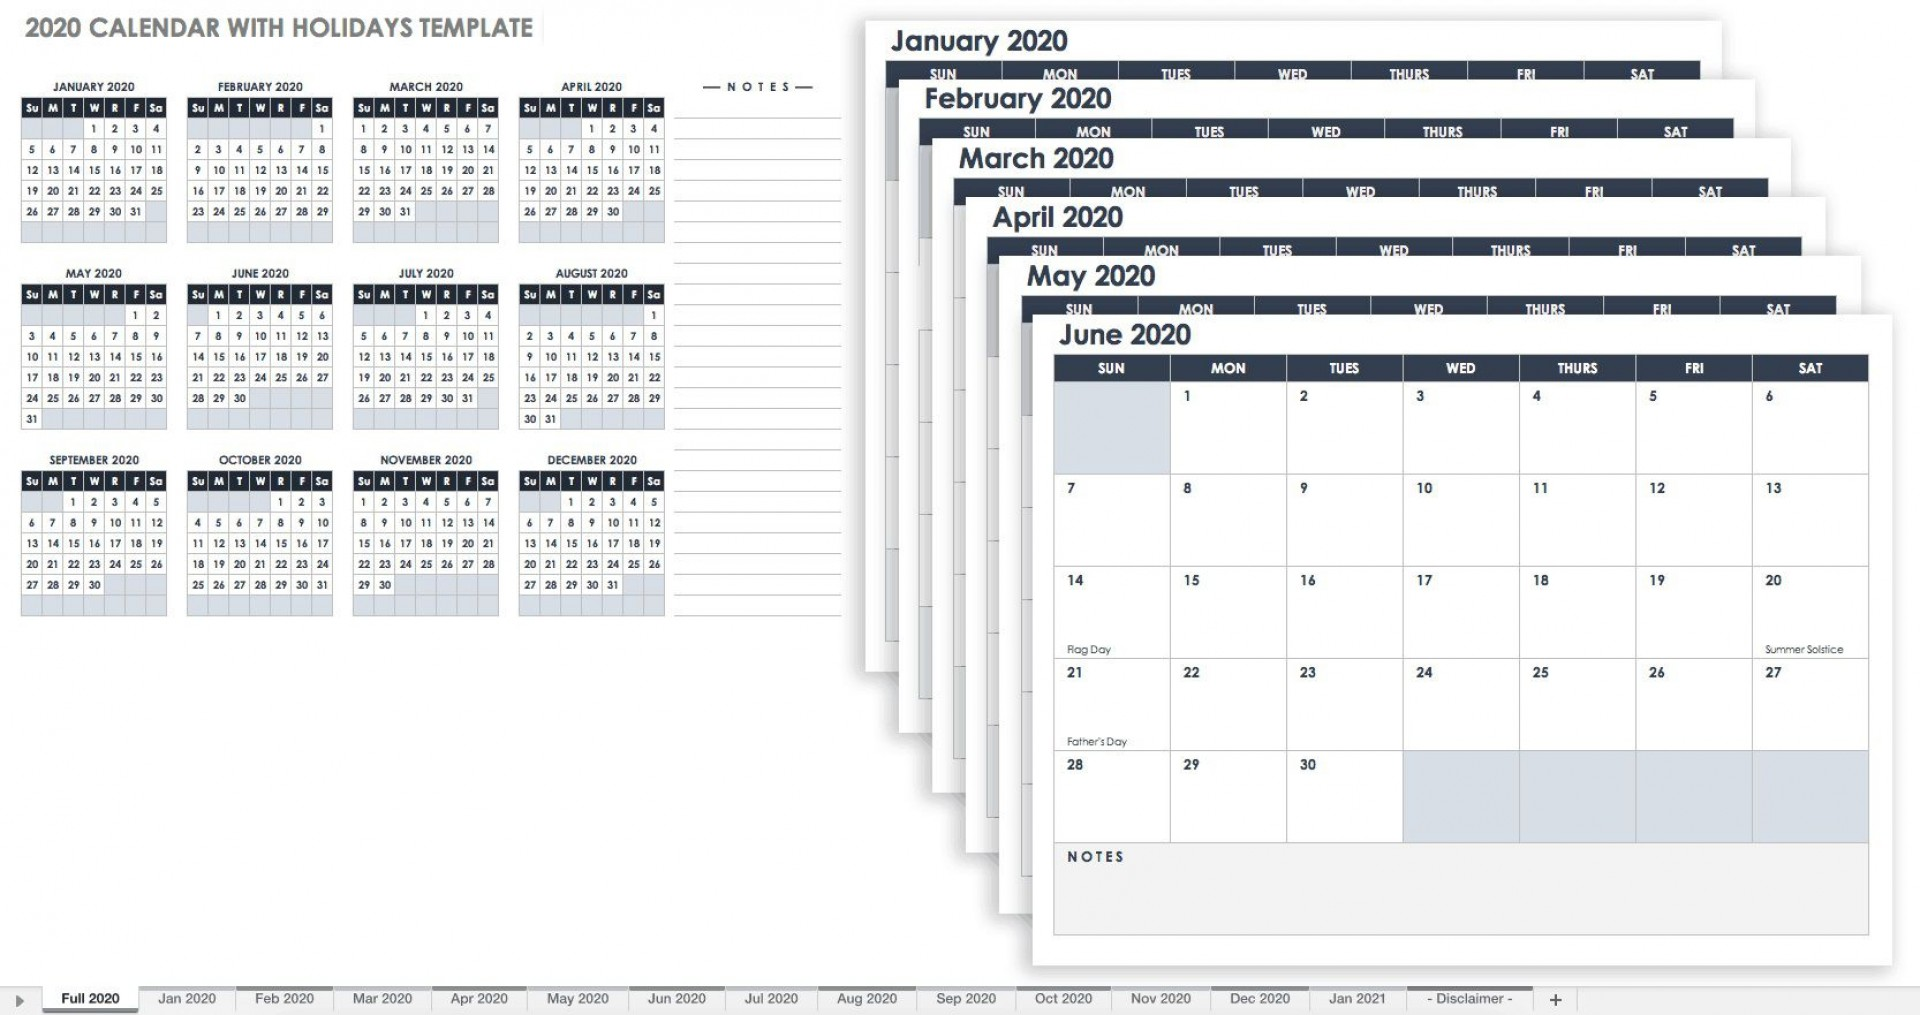 001 Incredible Google Sheet Calendar Template 2020 High Definition  Monthly And 2021 2020-211920